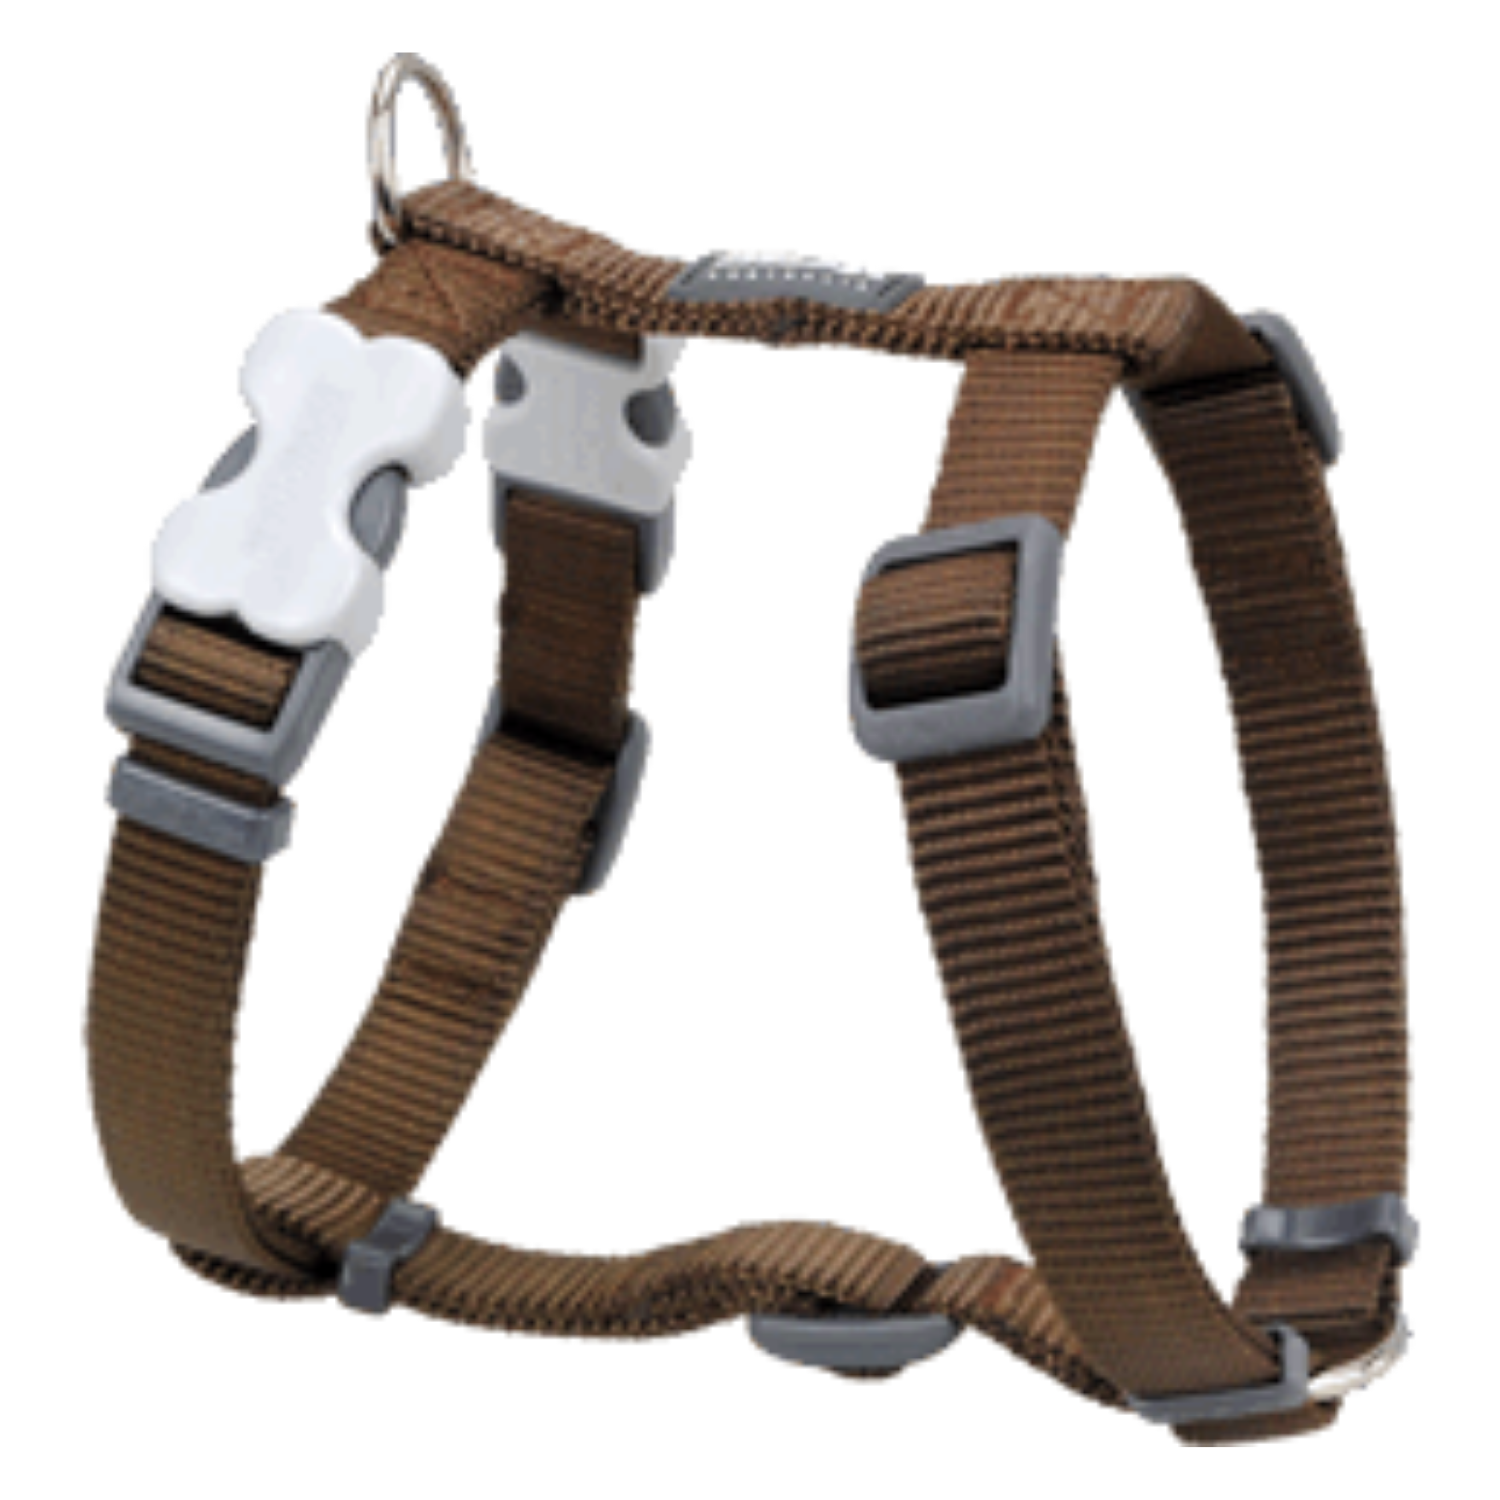 Red Dingo Dog Harness - Classic Range (Brown)